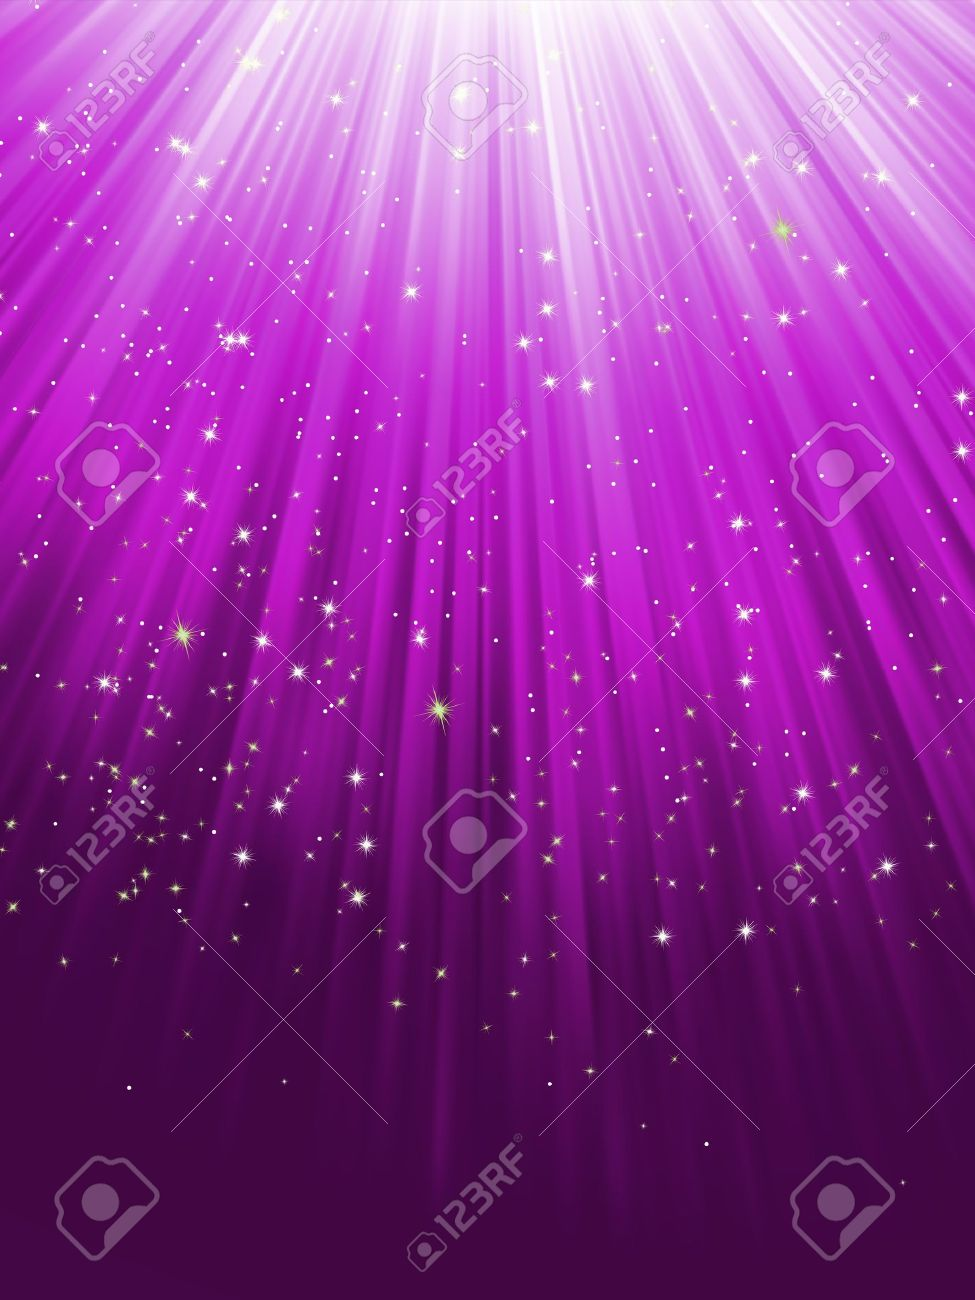 Stars on purple striped background file included royalty free stars on purple striped background file included stock vector 15964123 thecheapjerseys Gallery